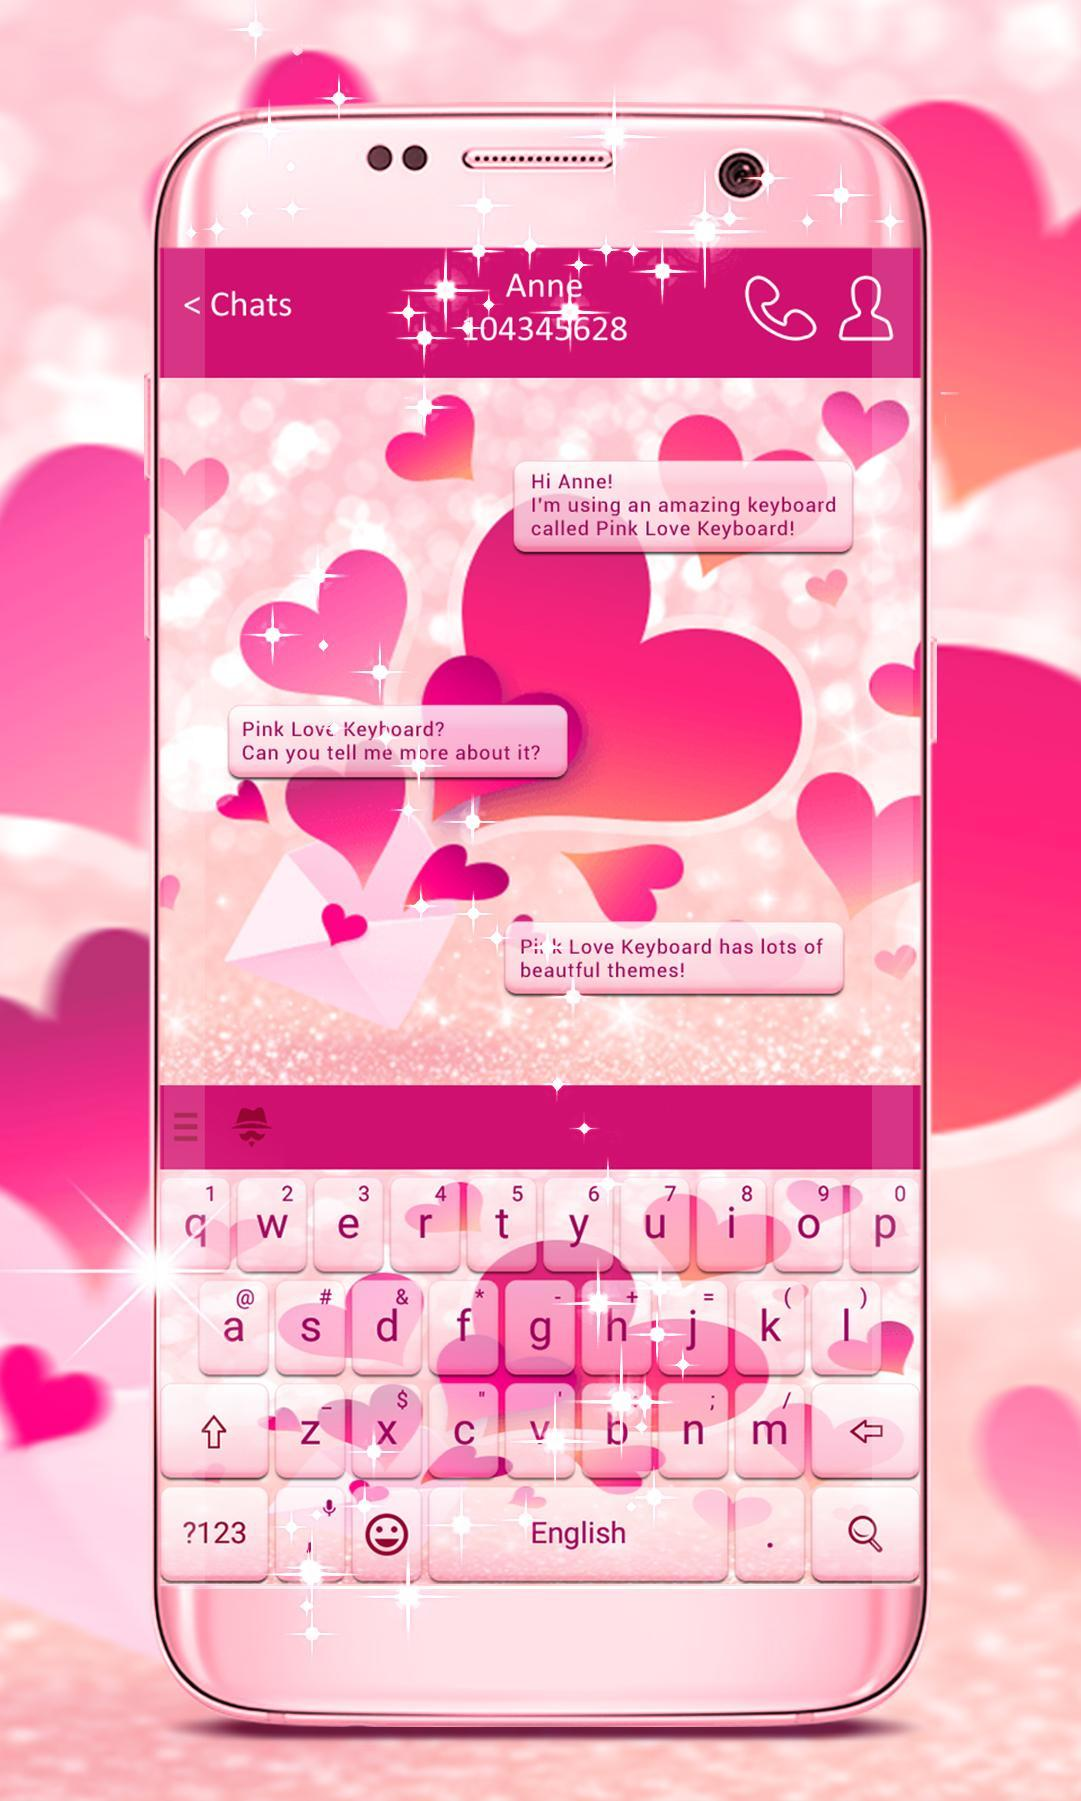 Pink Love Keyboard for Android - APK Download